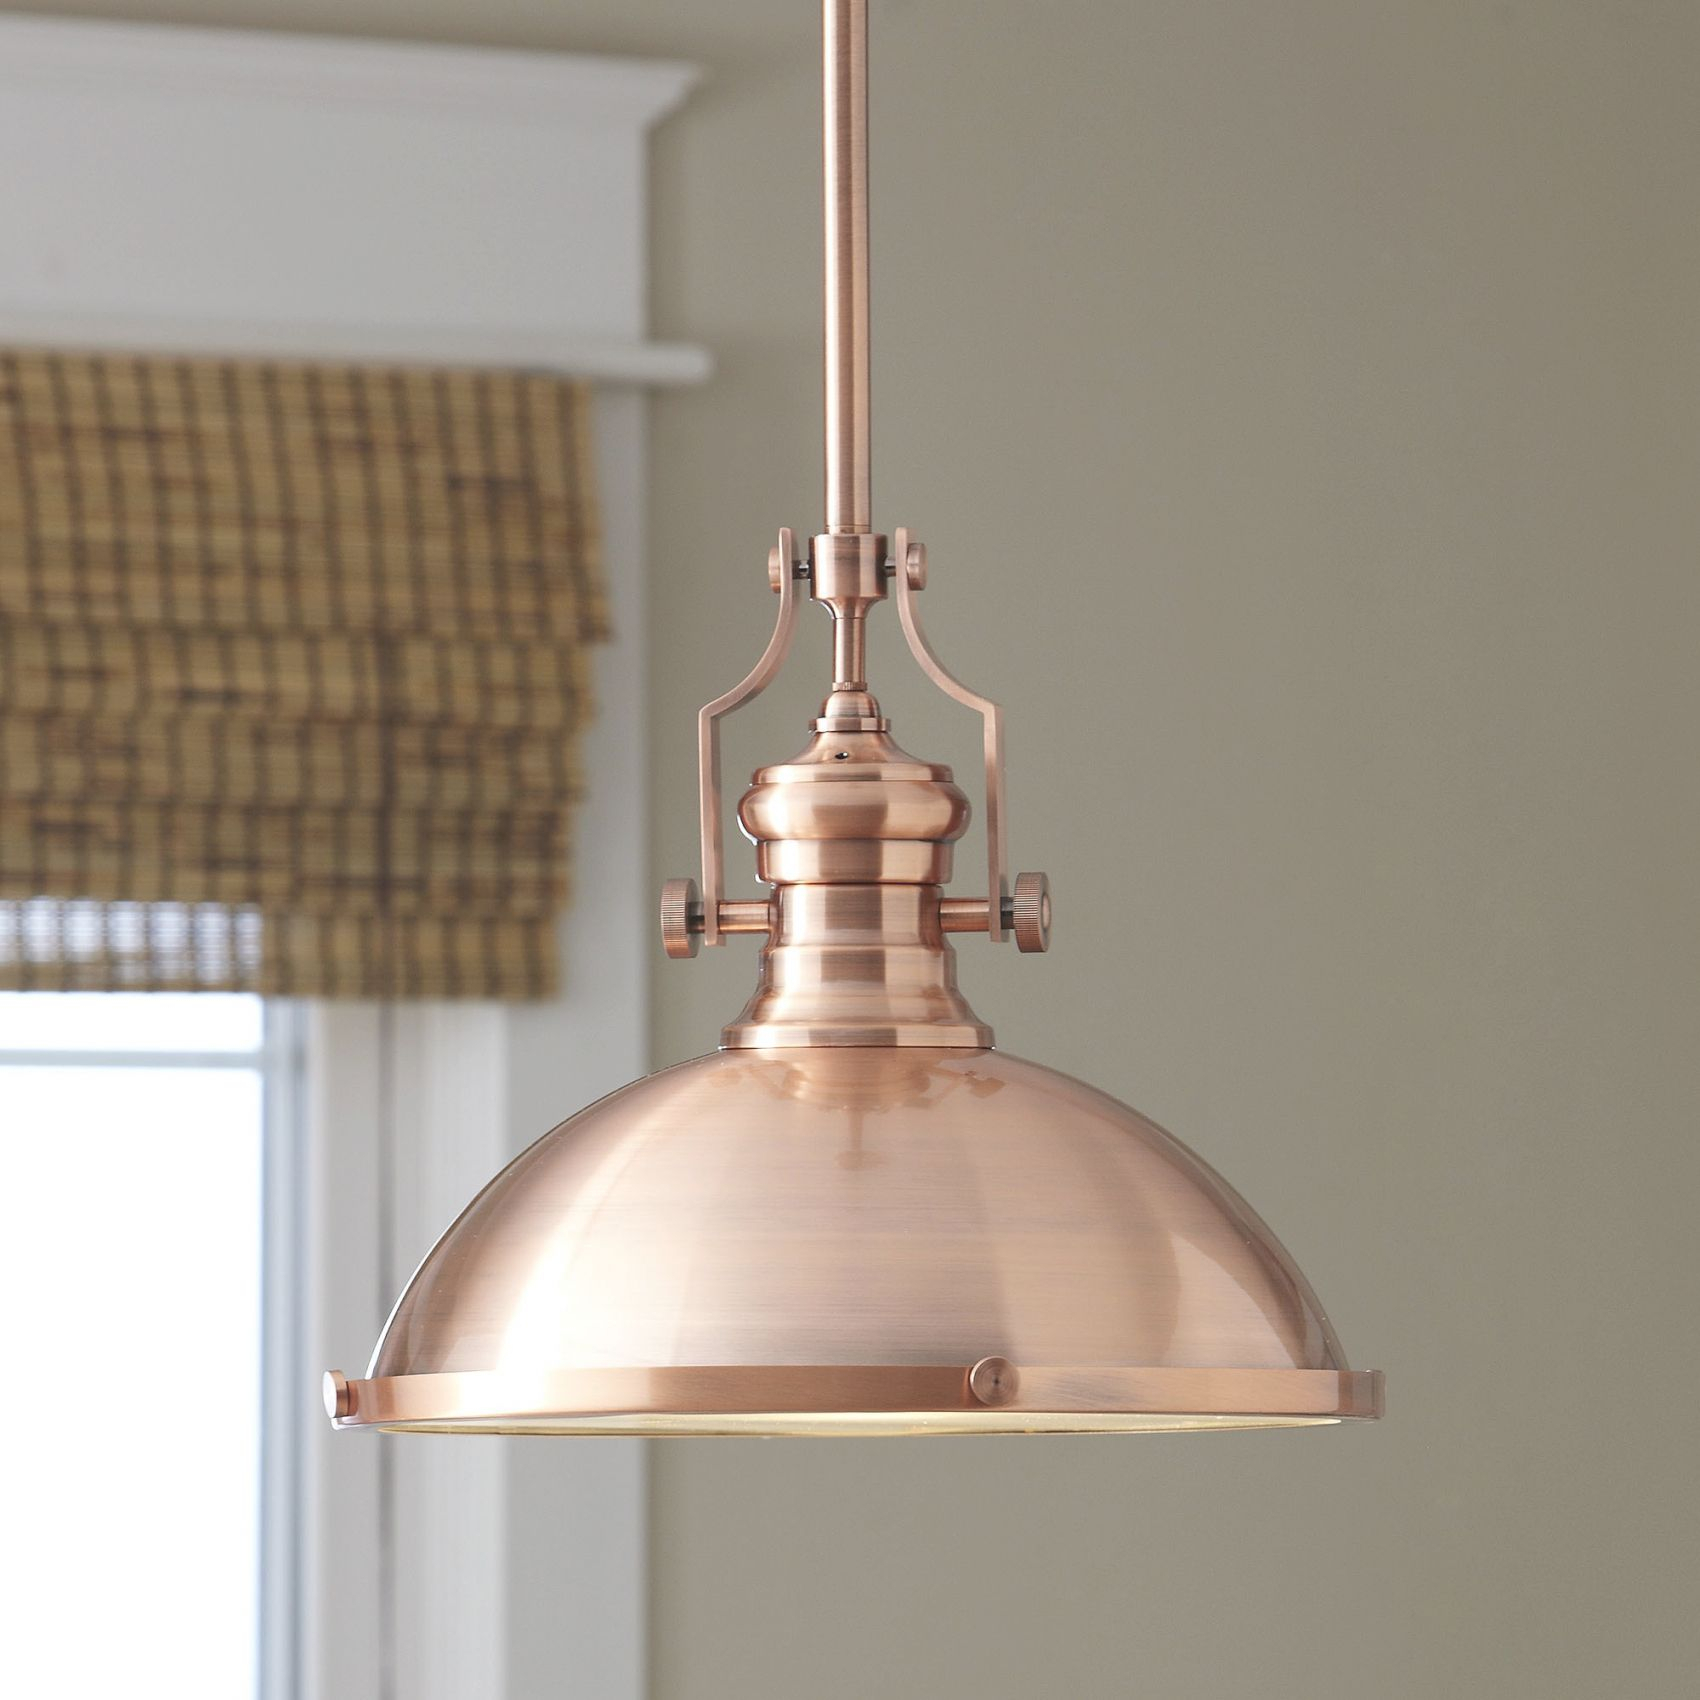 Birch Lane Kitchen Lighting | Mattress & Kitchen In Proctor 1 Light Bowl Pendants (View 17 of 30)